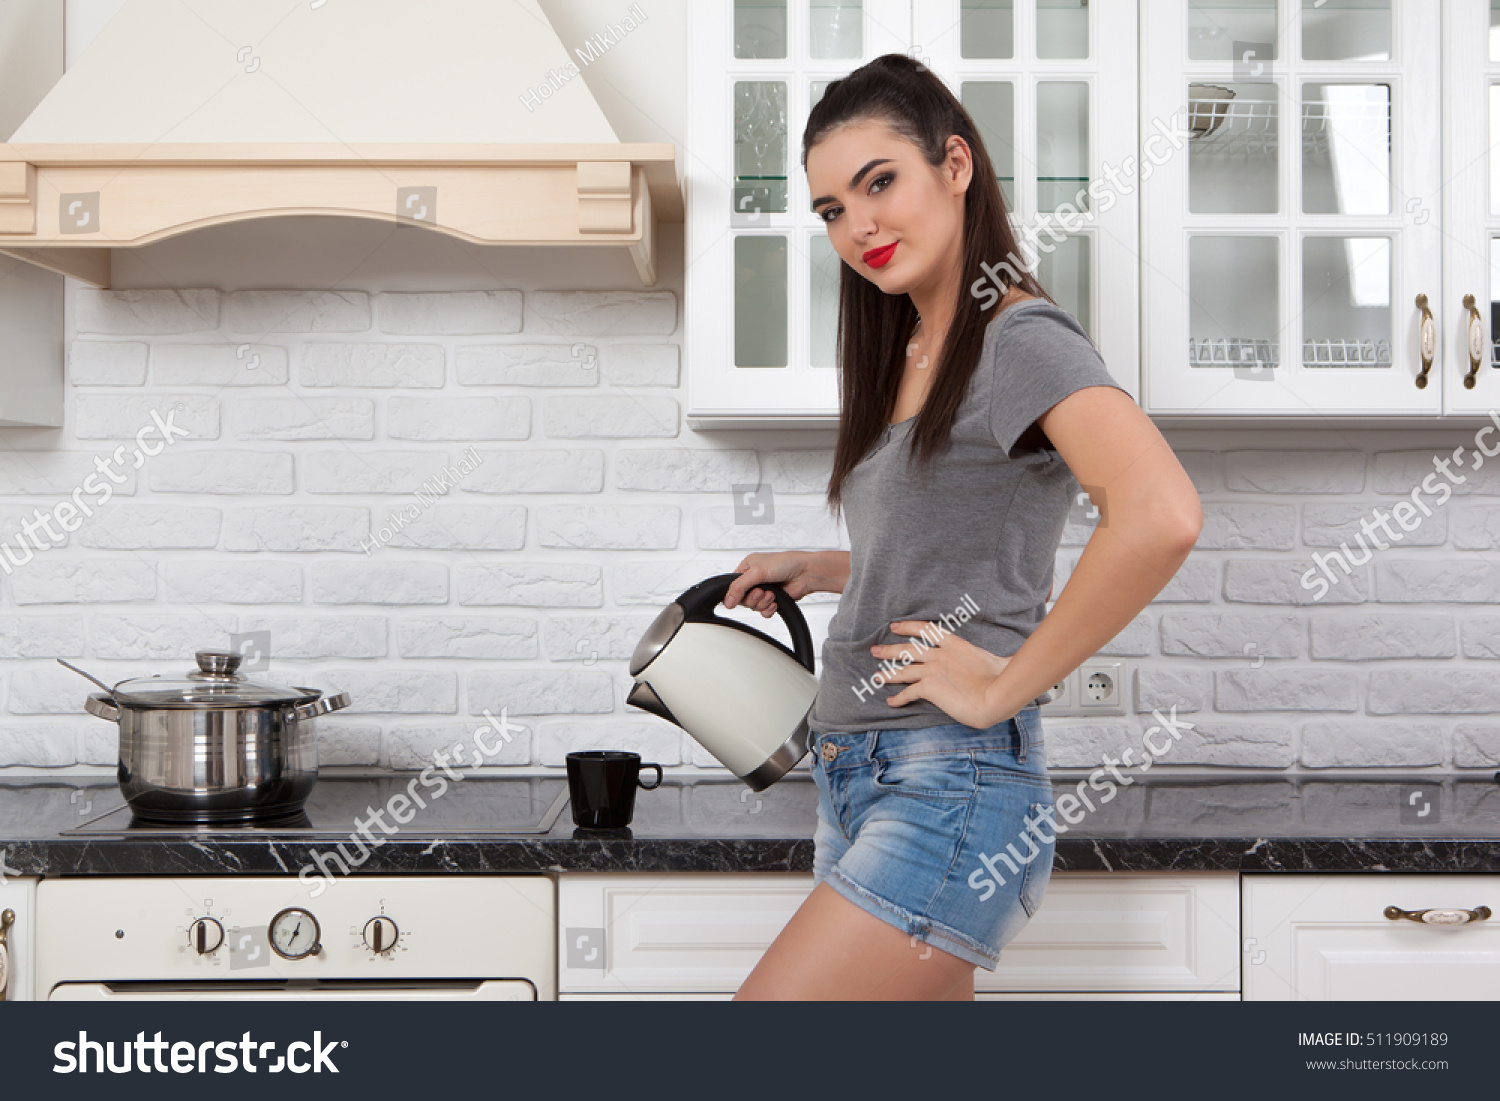 Young Beautiful Slim Girl Standing Kitchen Stock Photo (Royalty Free ...